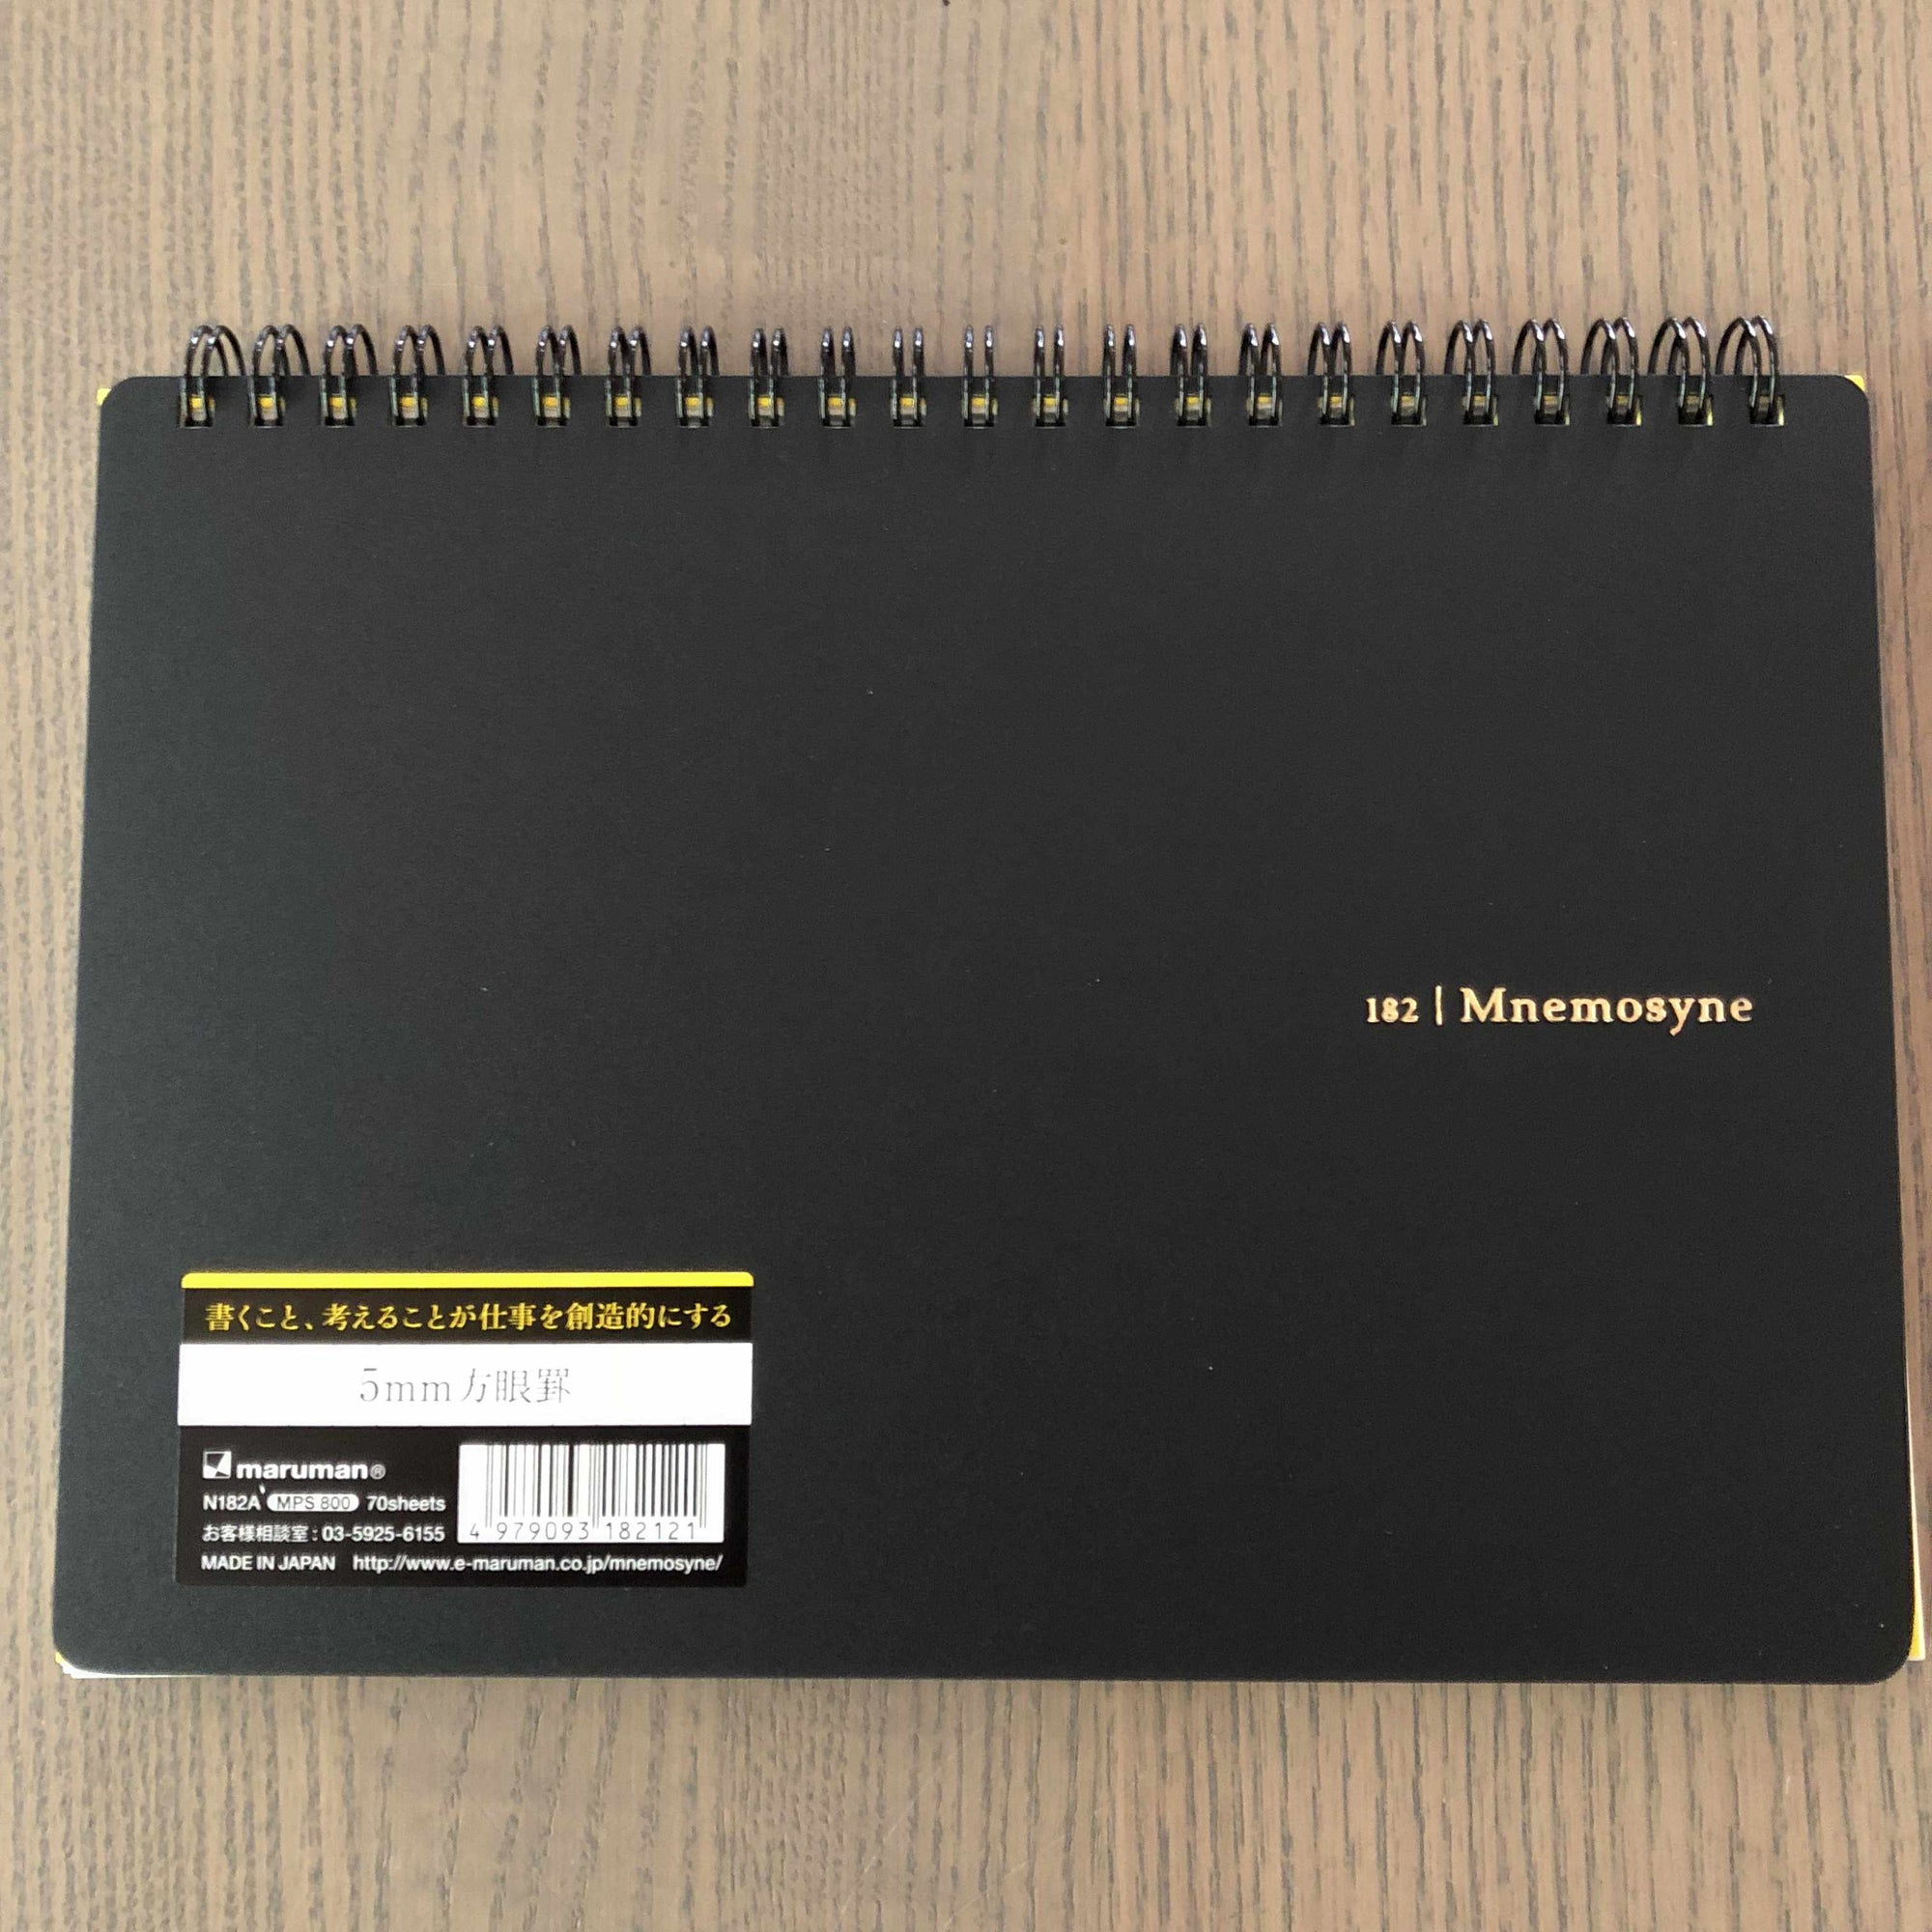 Mnemosyne 182 Grid A5 Notebook-Notebook-Maruman-The Paper Seahorse